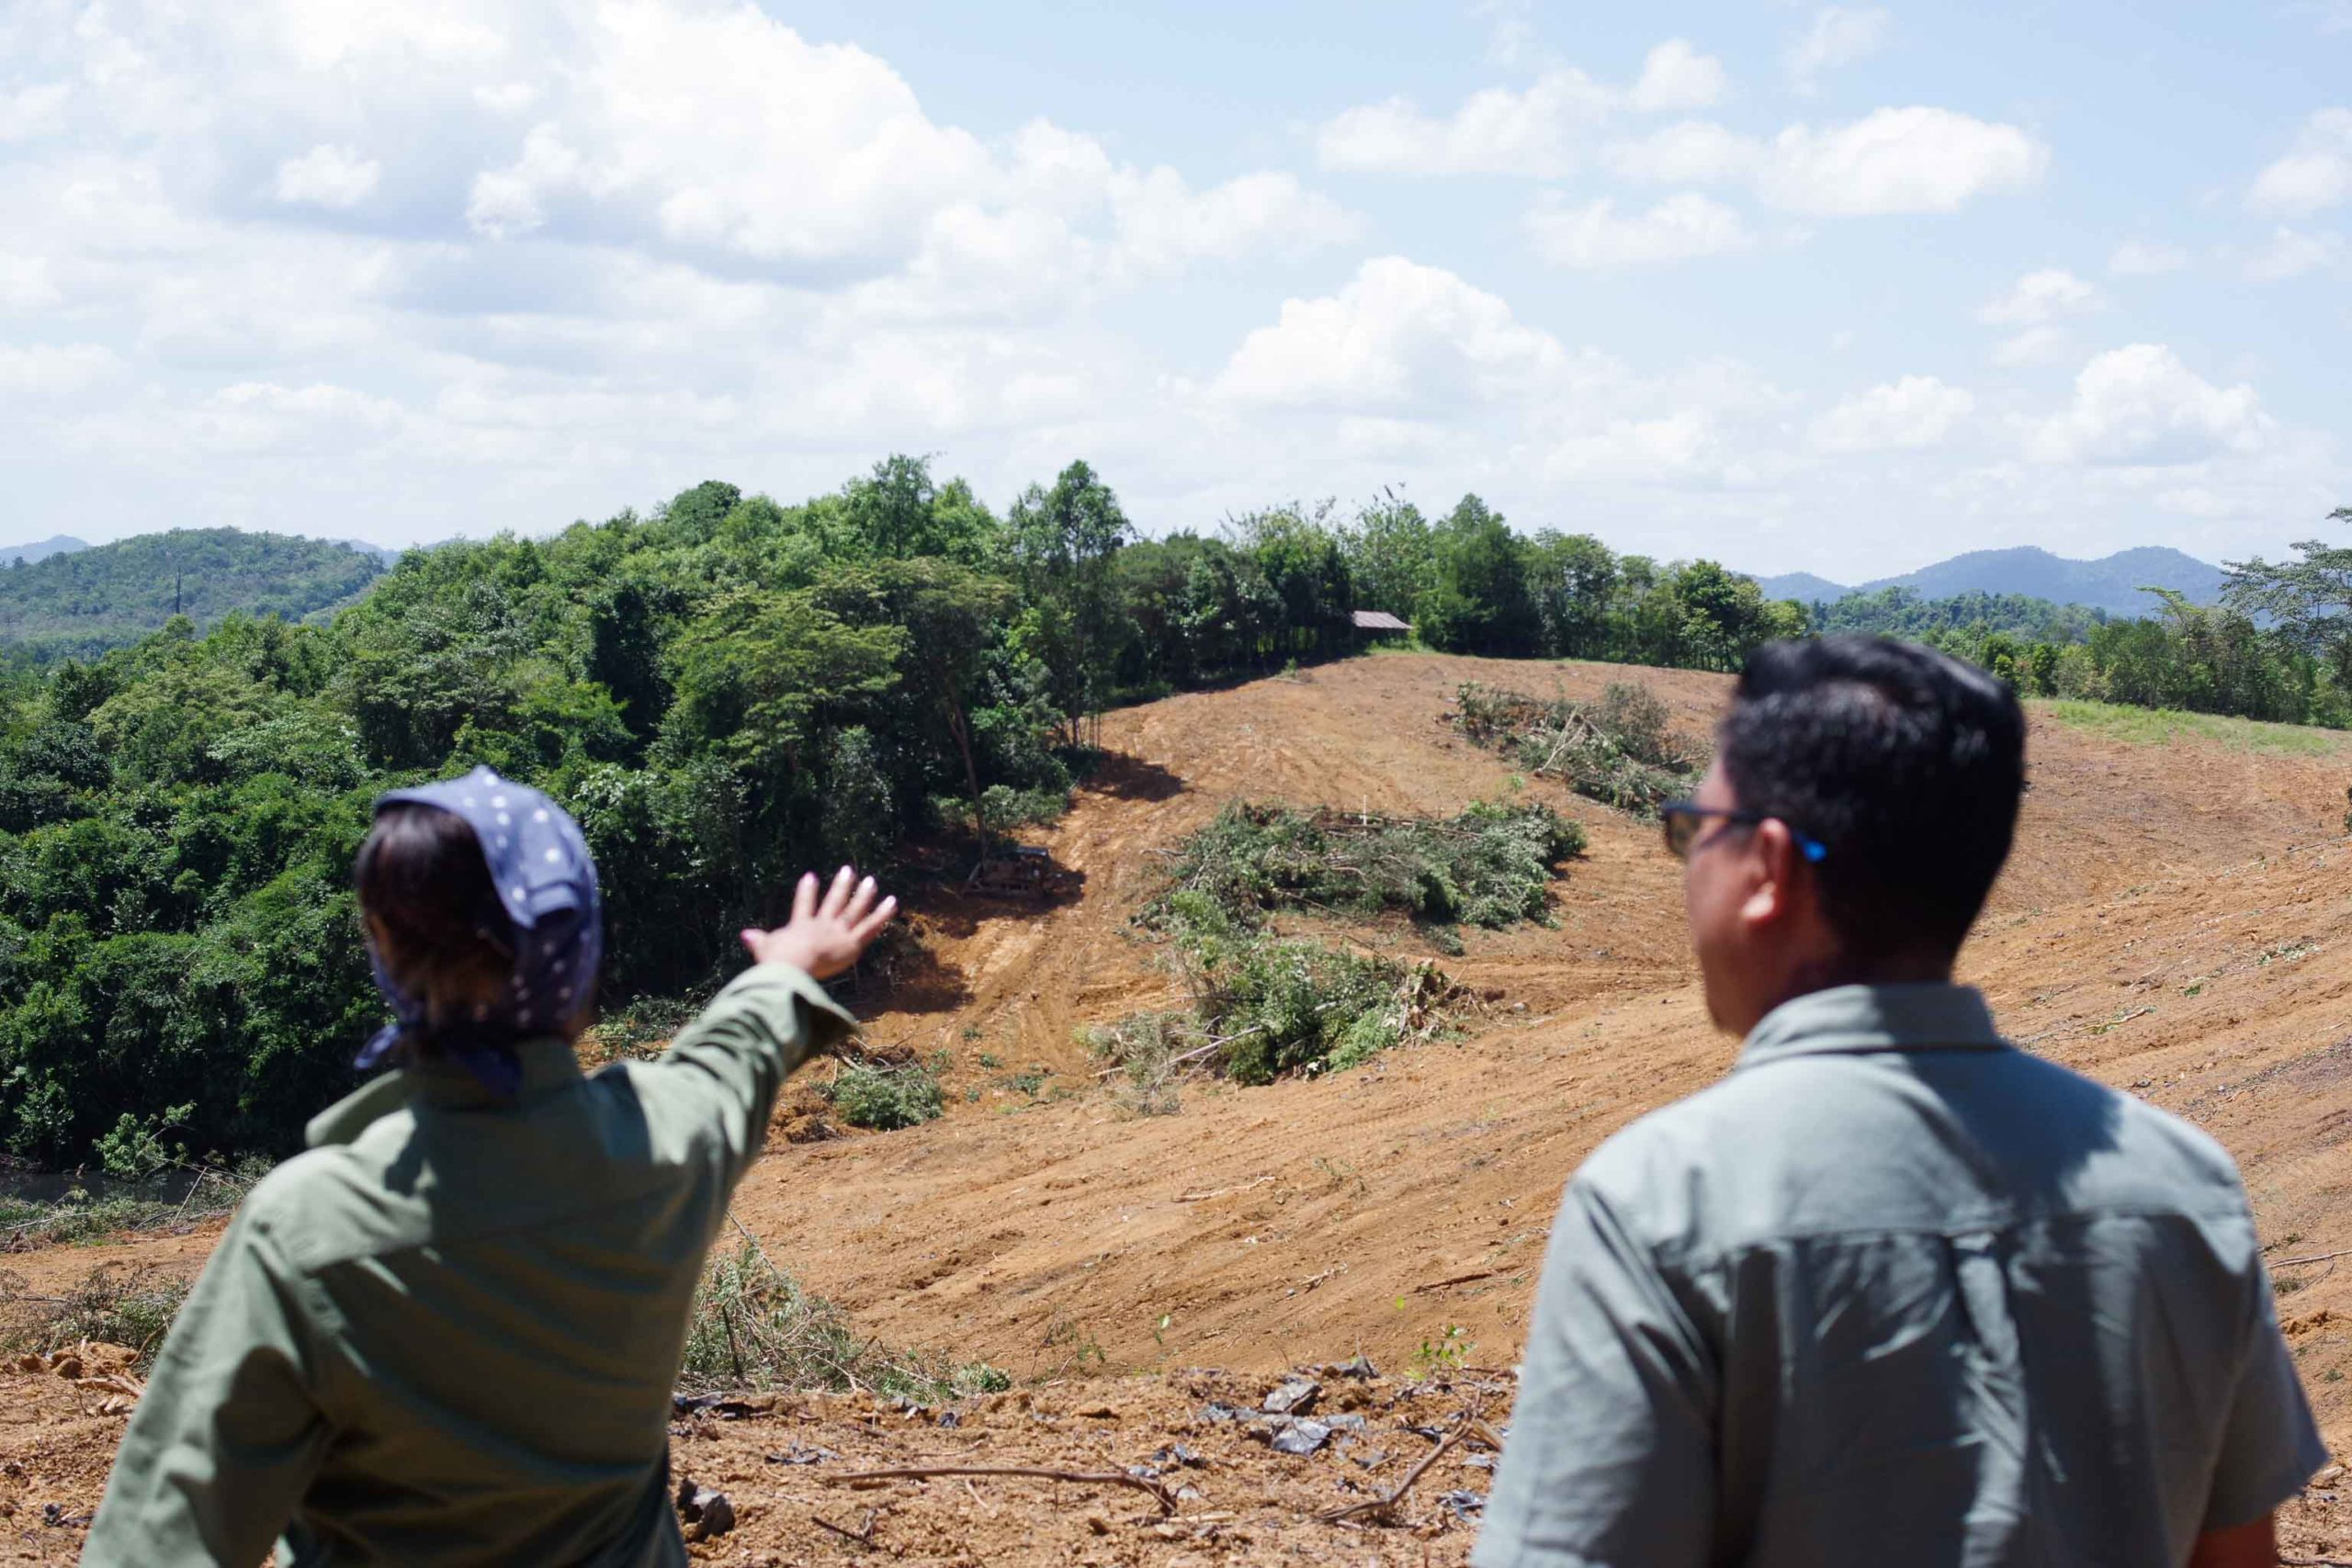 A plantation of rare trees in Perak is being bulldozed (Credit: YH Law)